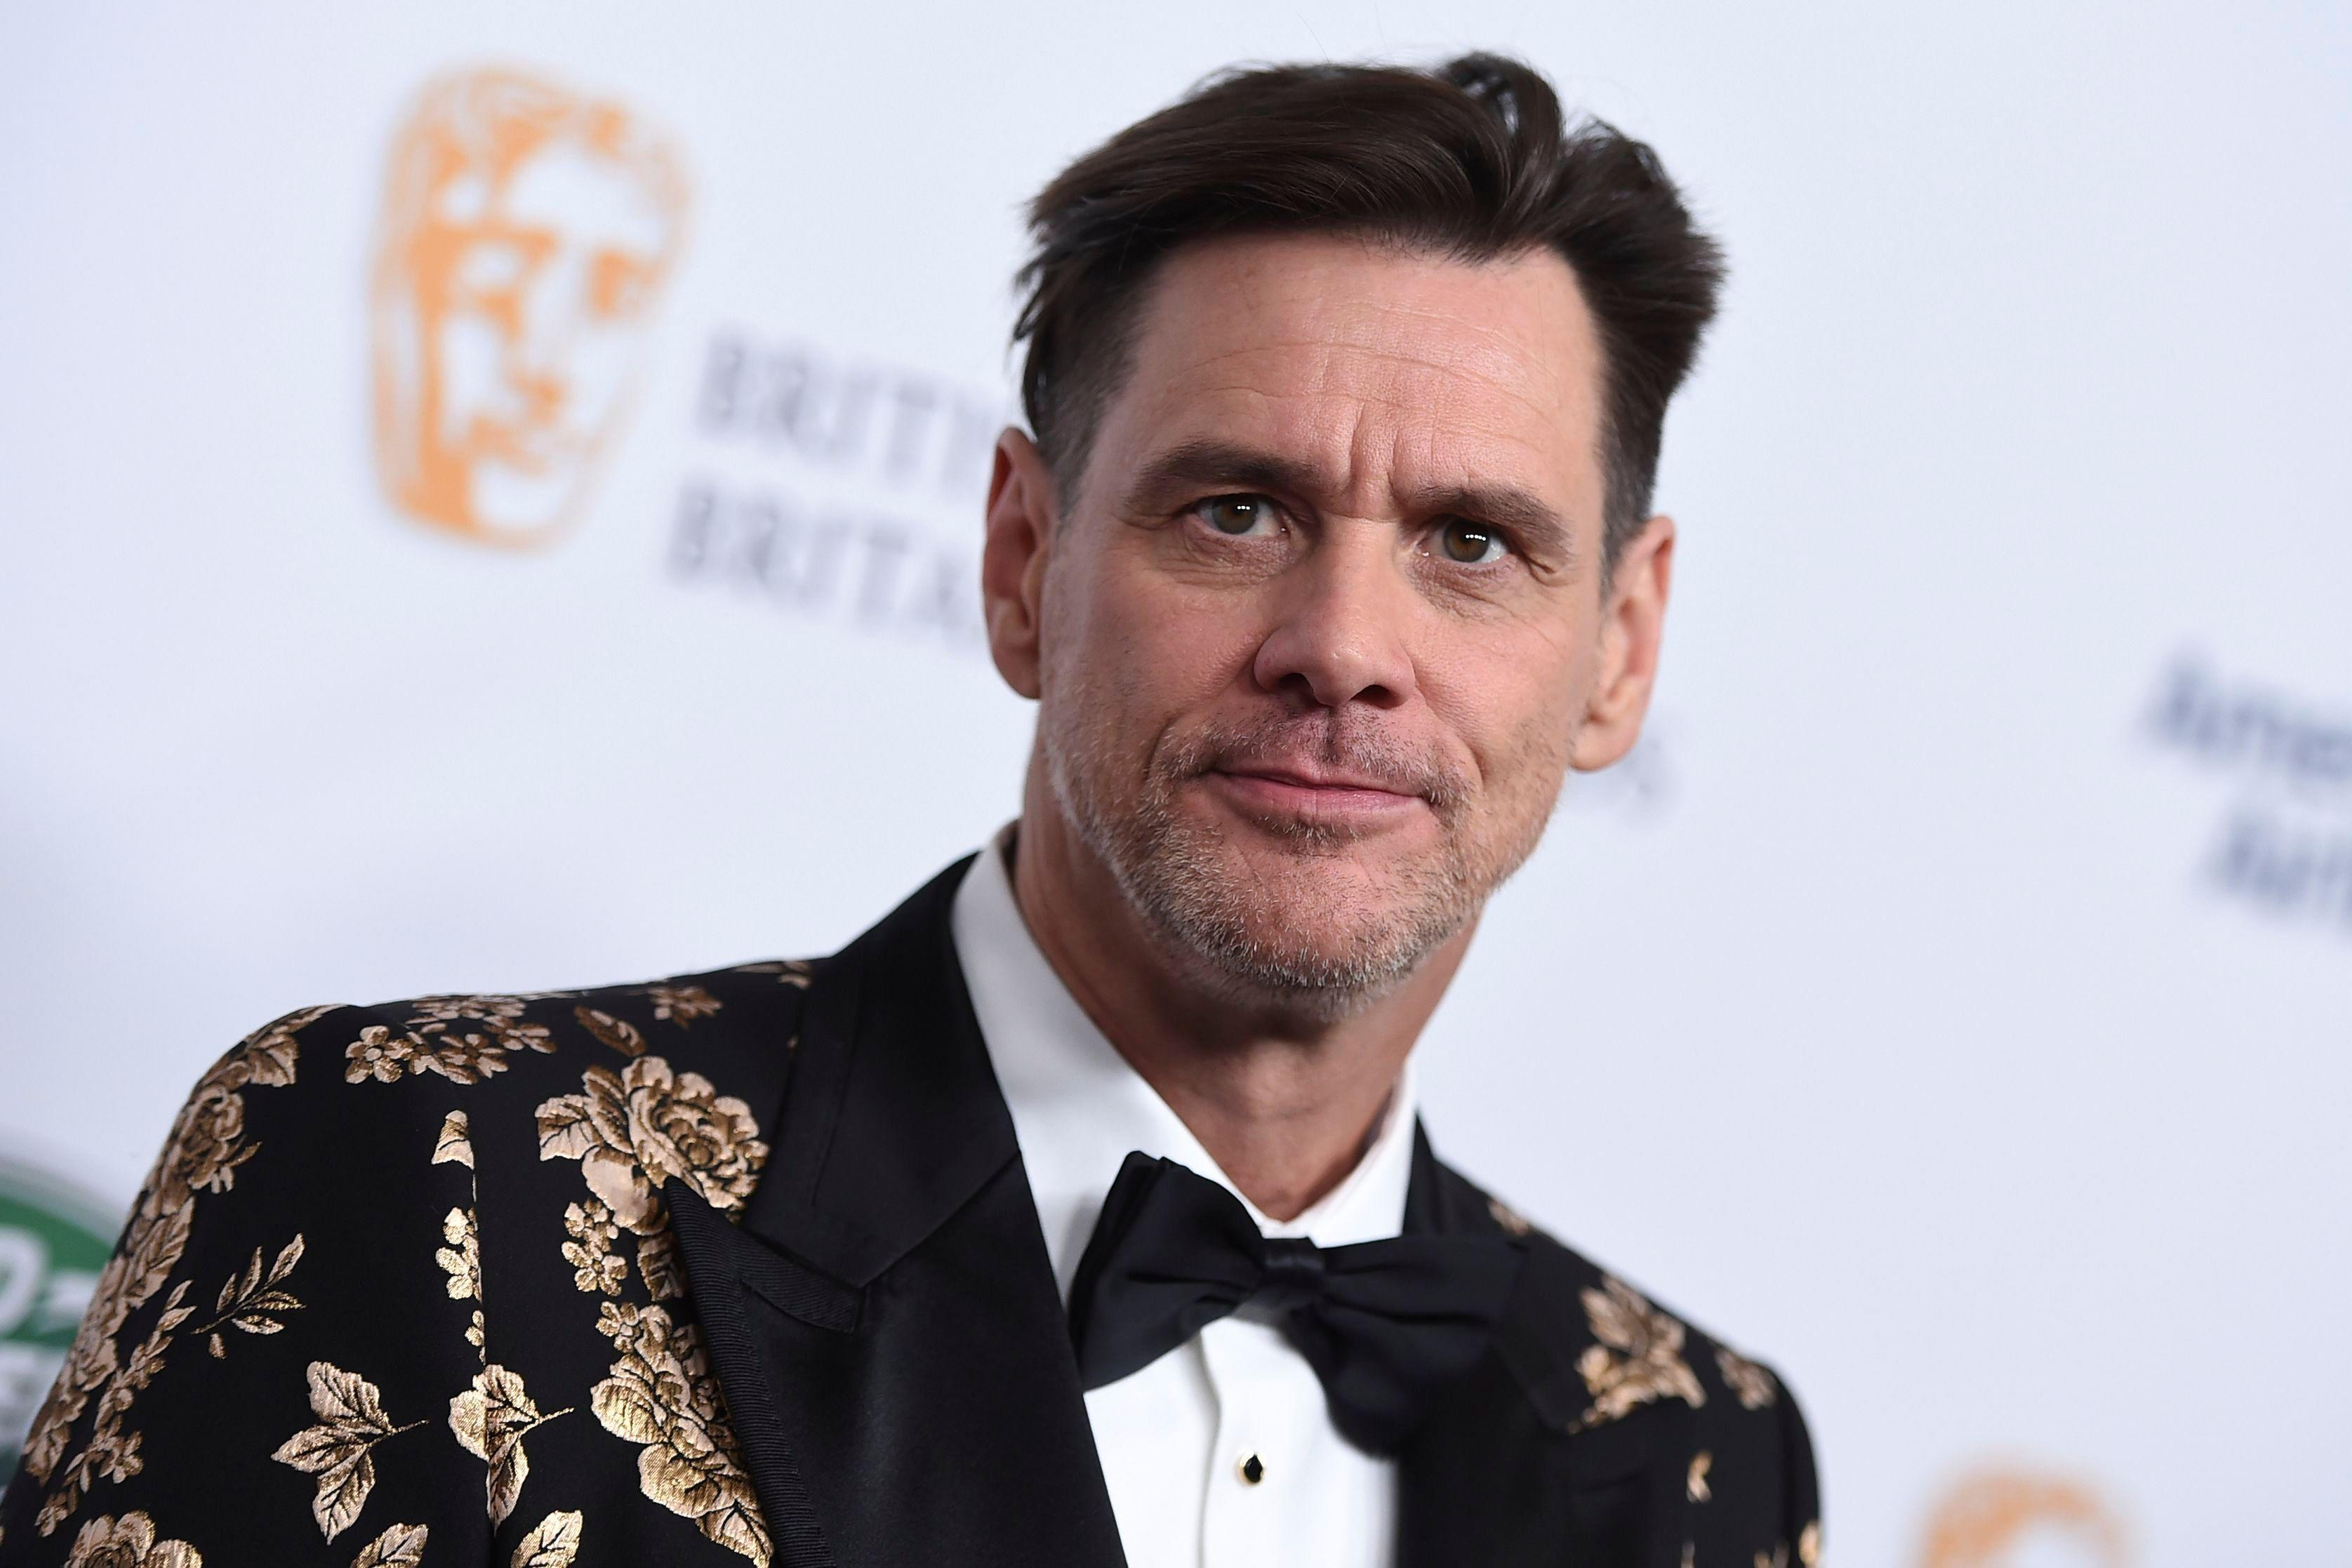 Jim Carrey on Trump Ignoring California Wildfires: 'This Is Manslaughter'